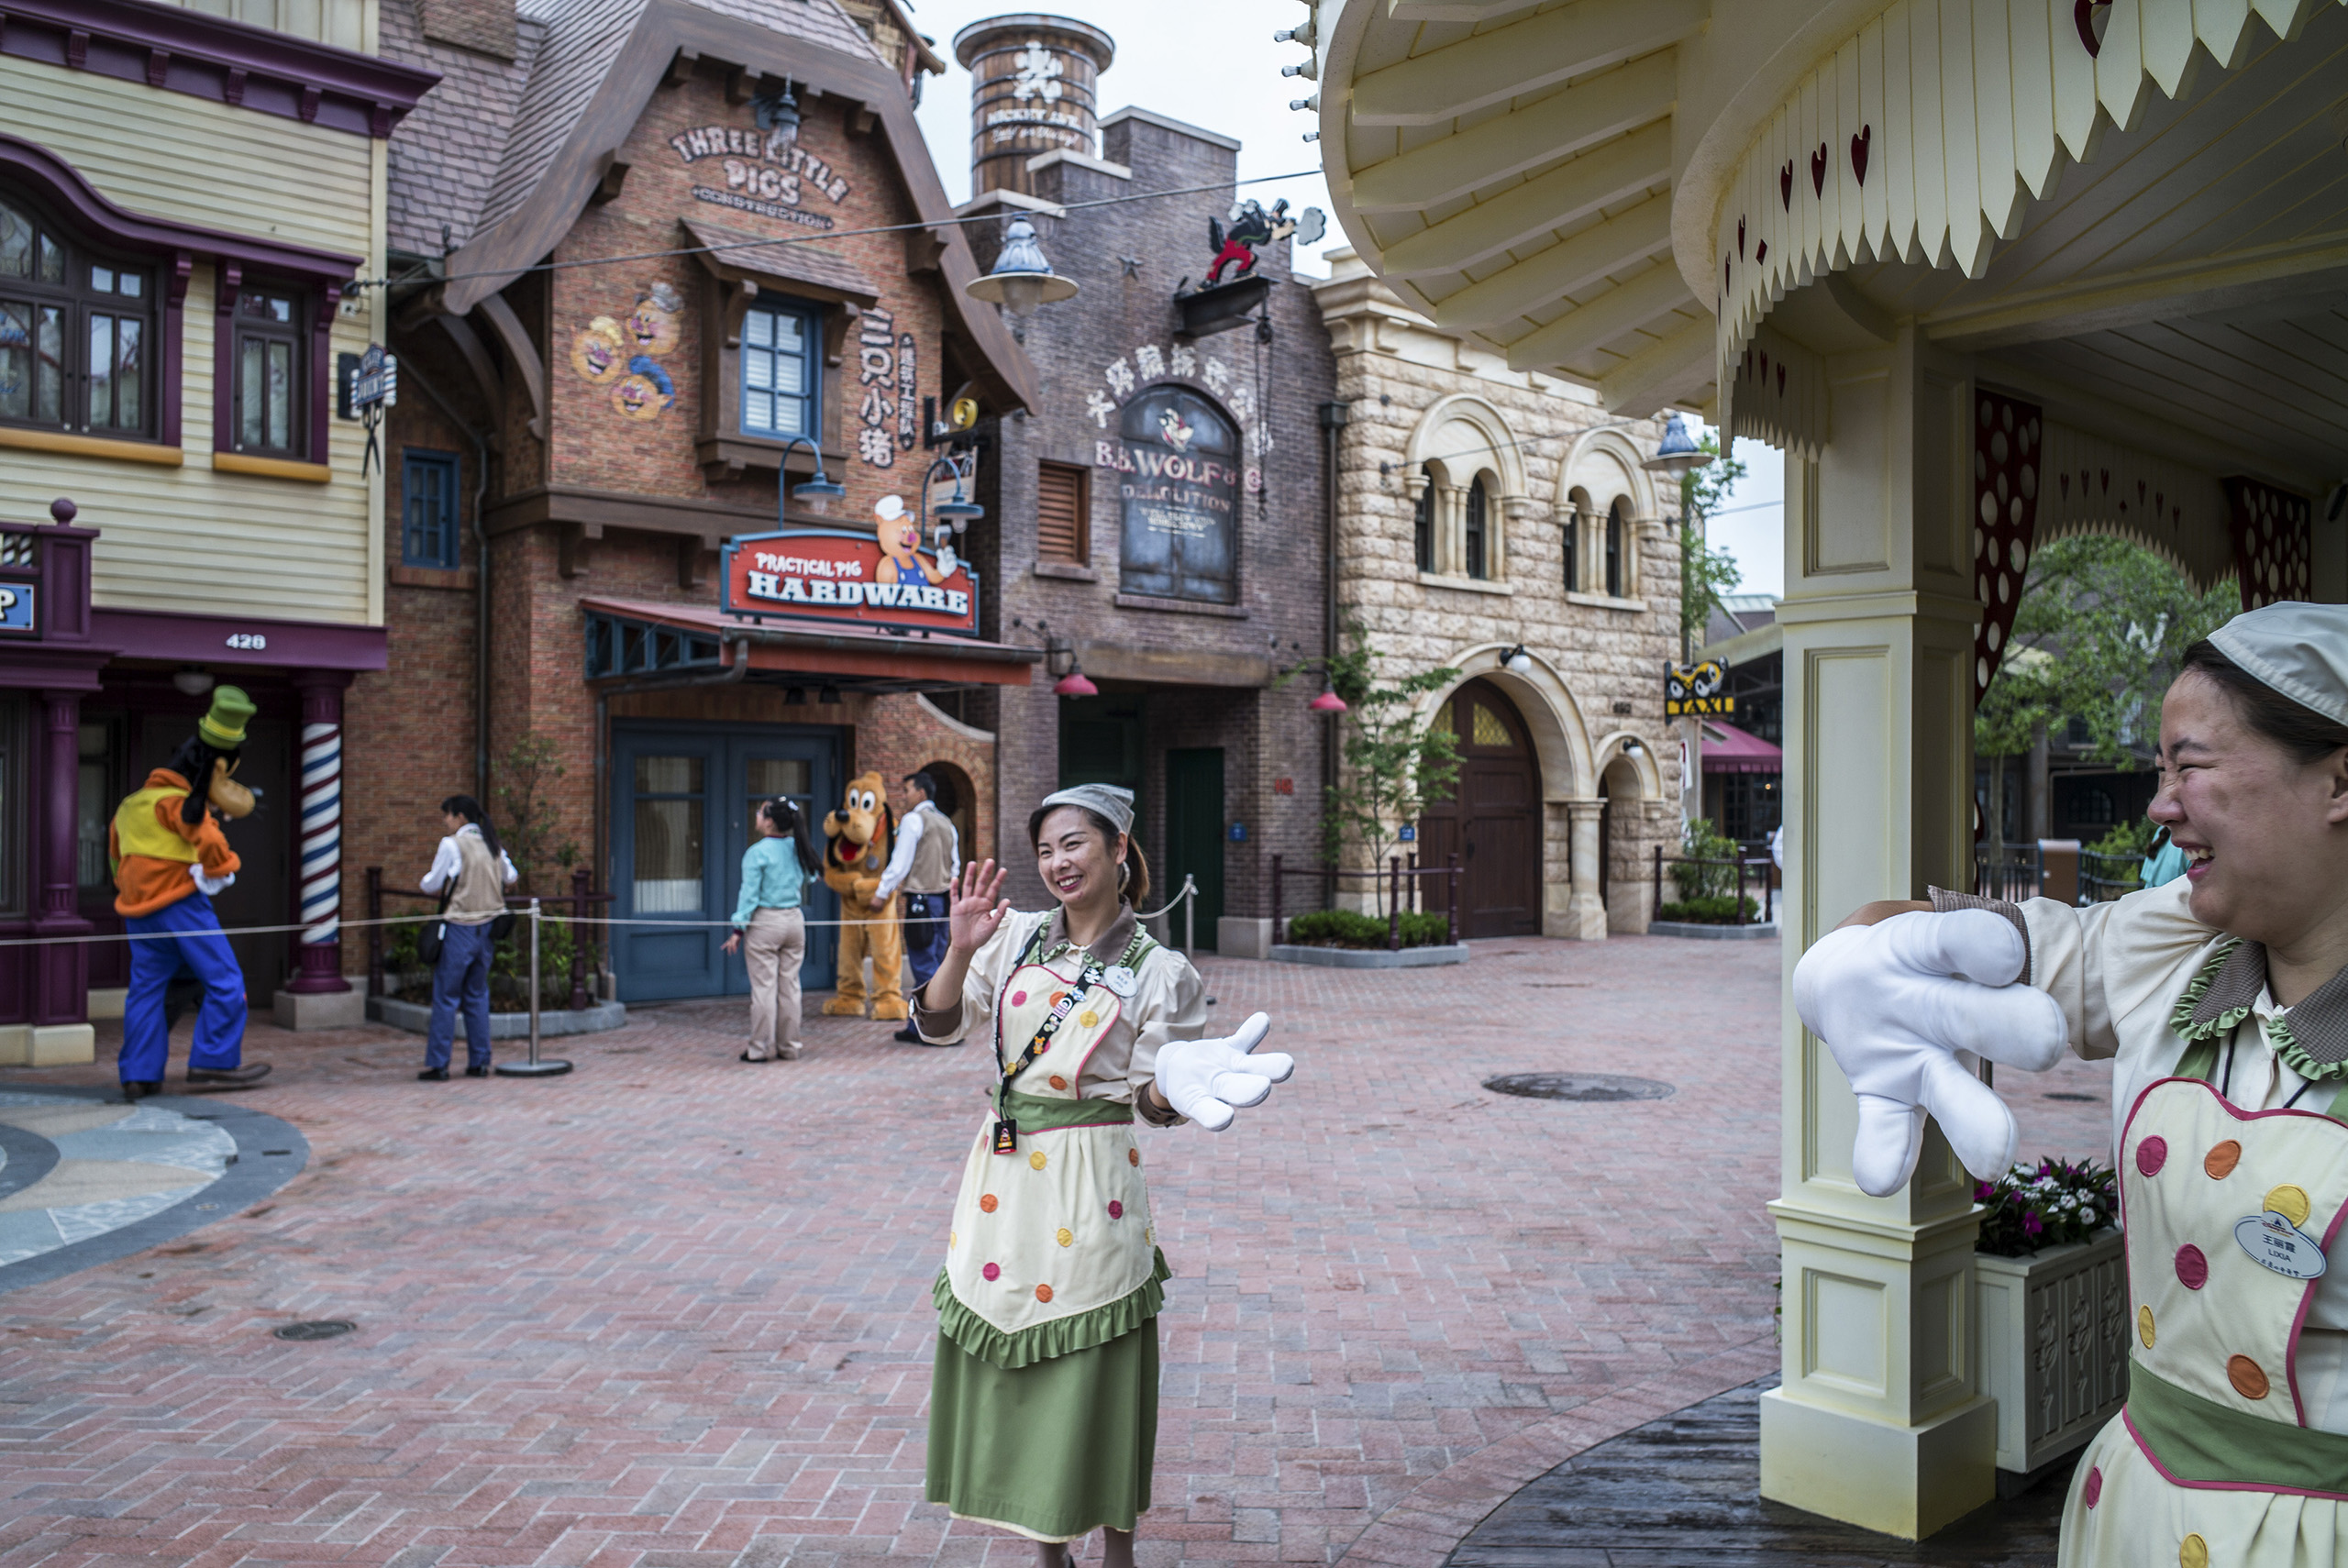 Workers at Shanghai Disneyland greet guests during a preview of the theme park on June 10, 2016